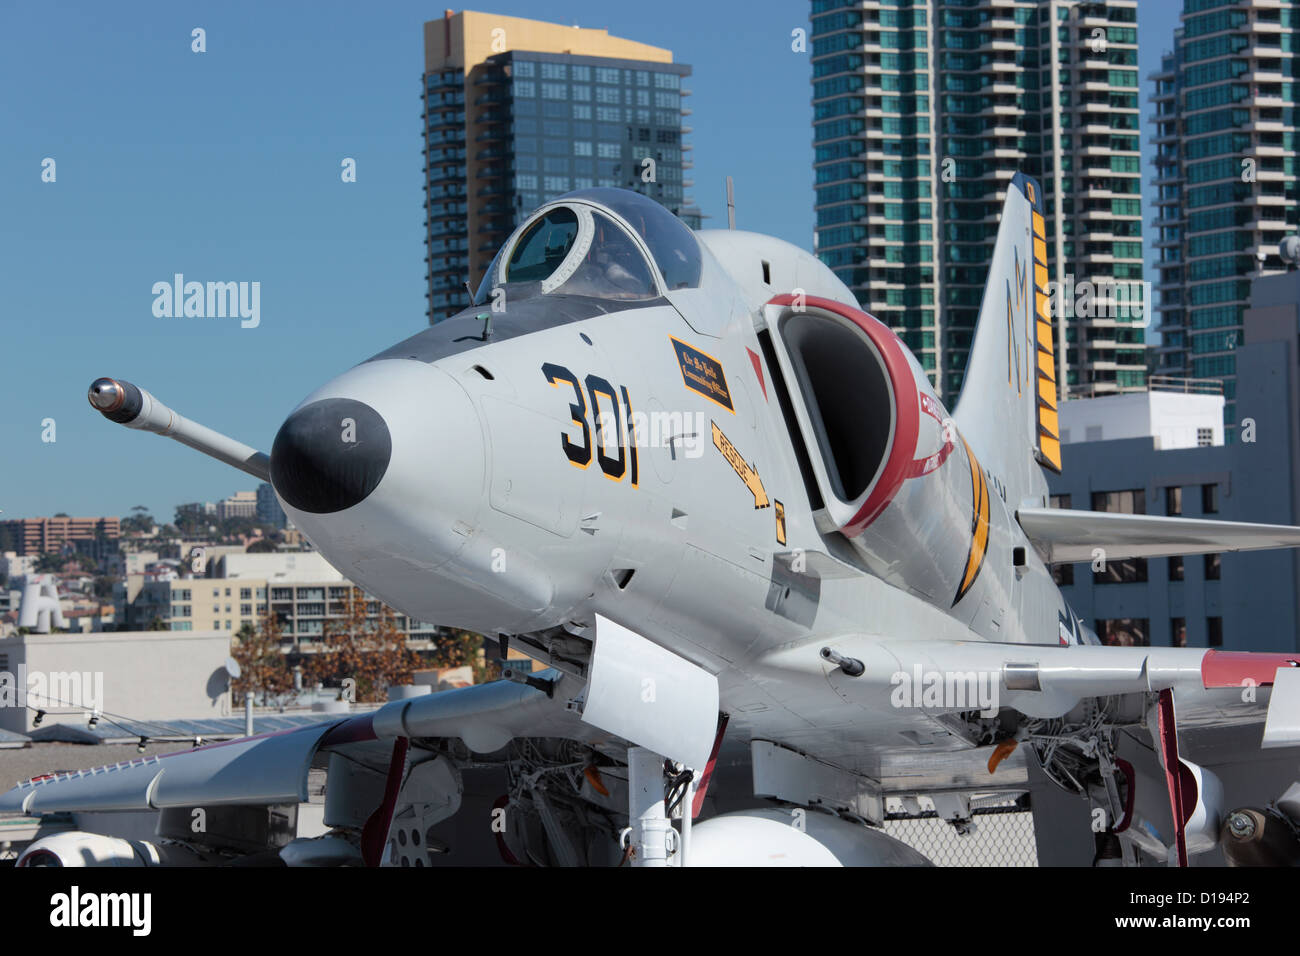 A4 Skyhawk jet fighter aboard the USS Midway in San Diego, California. Stock Photo